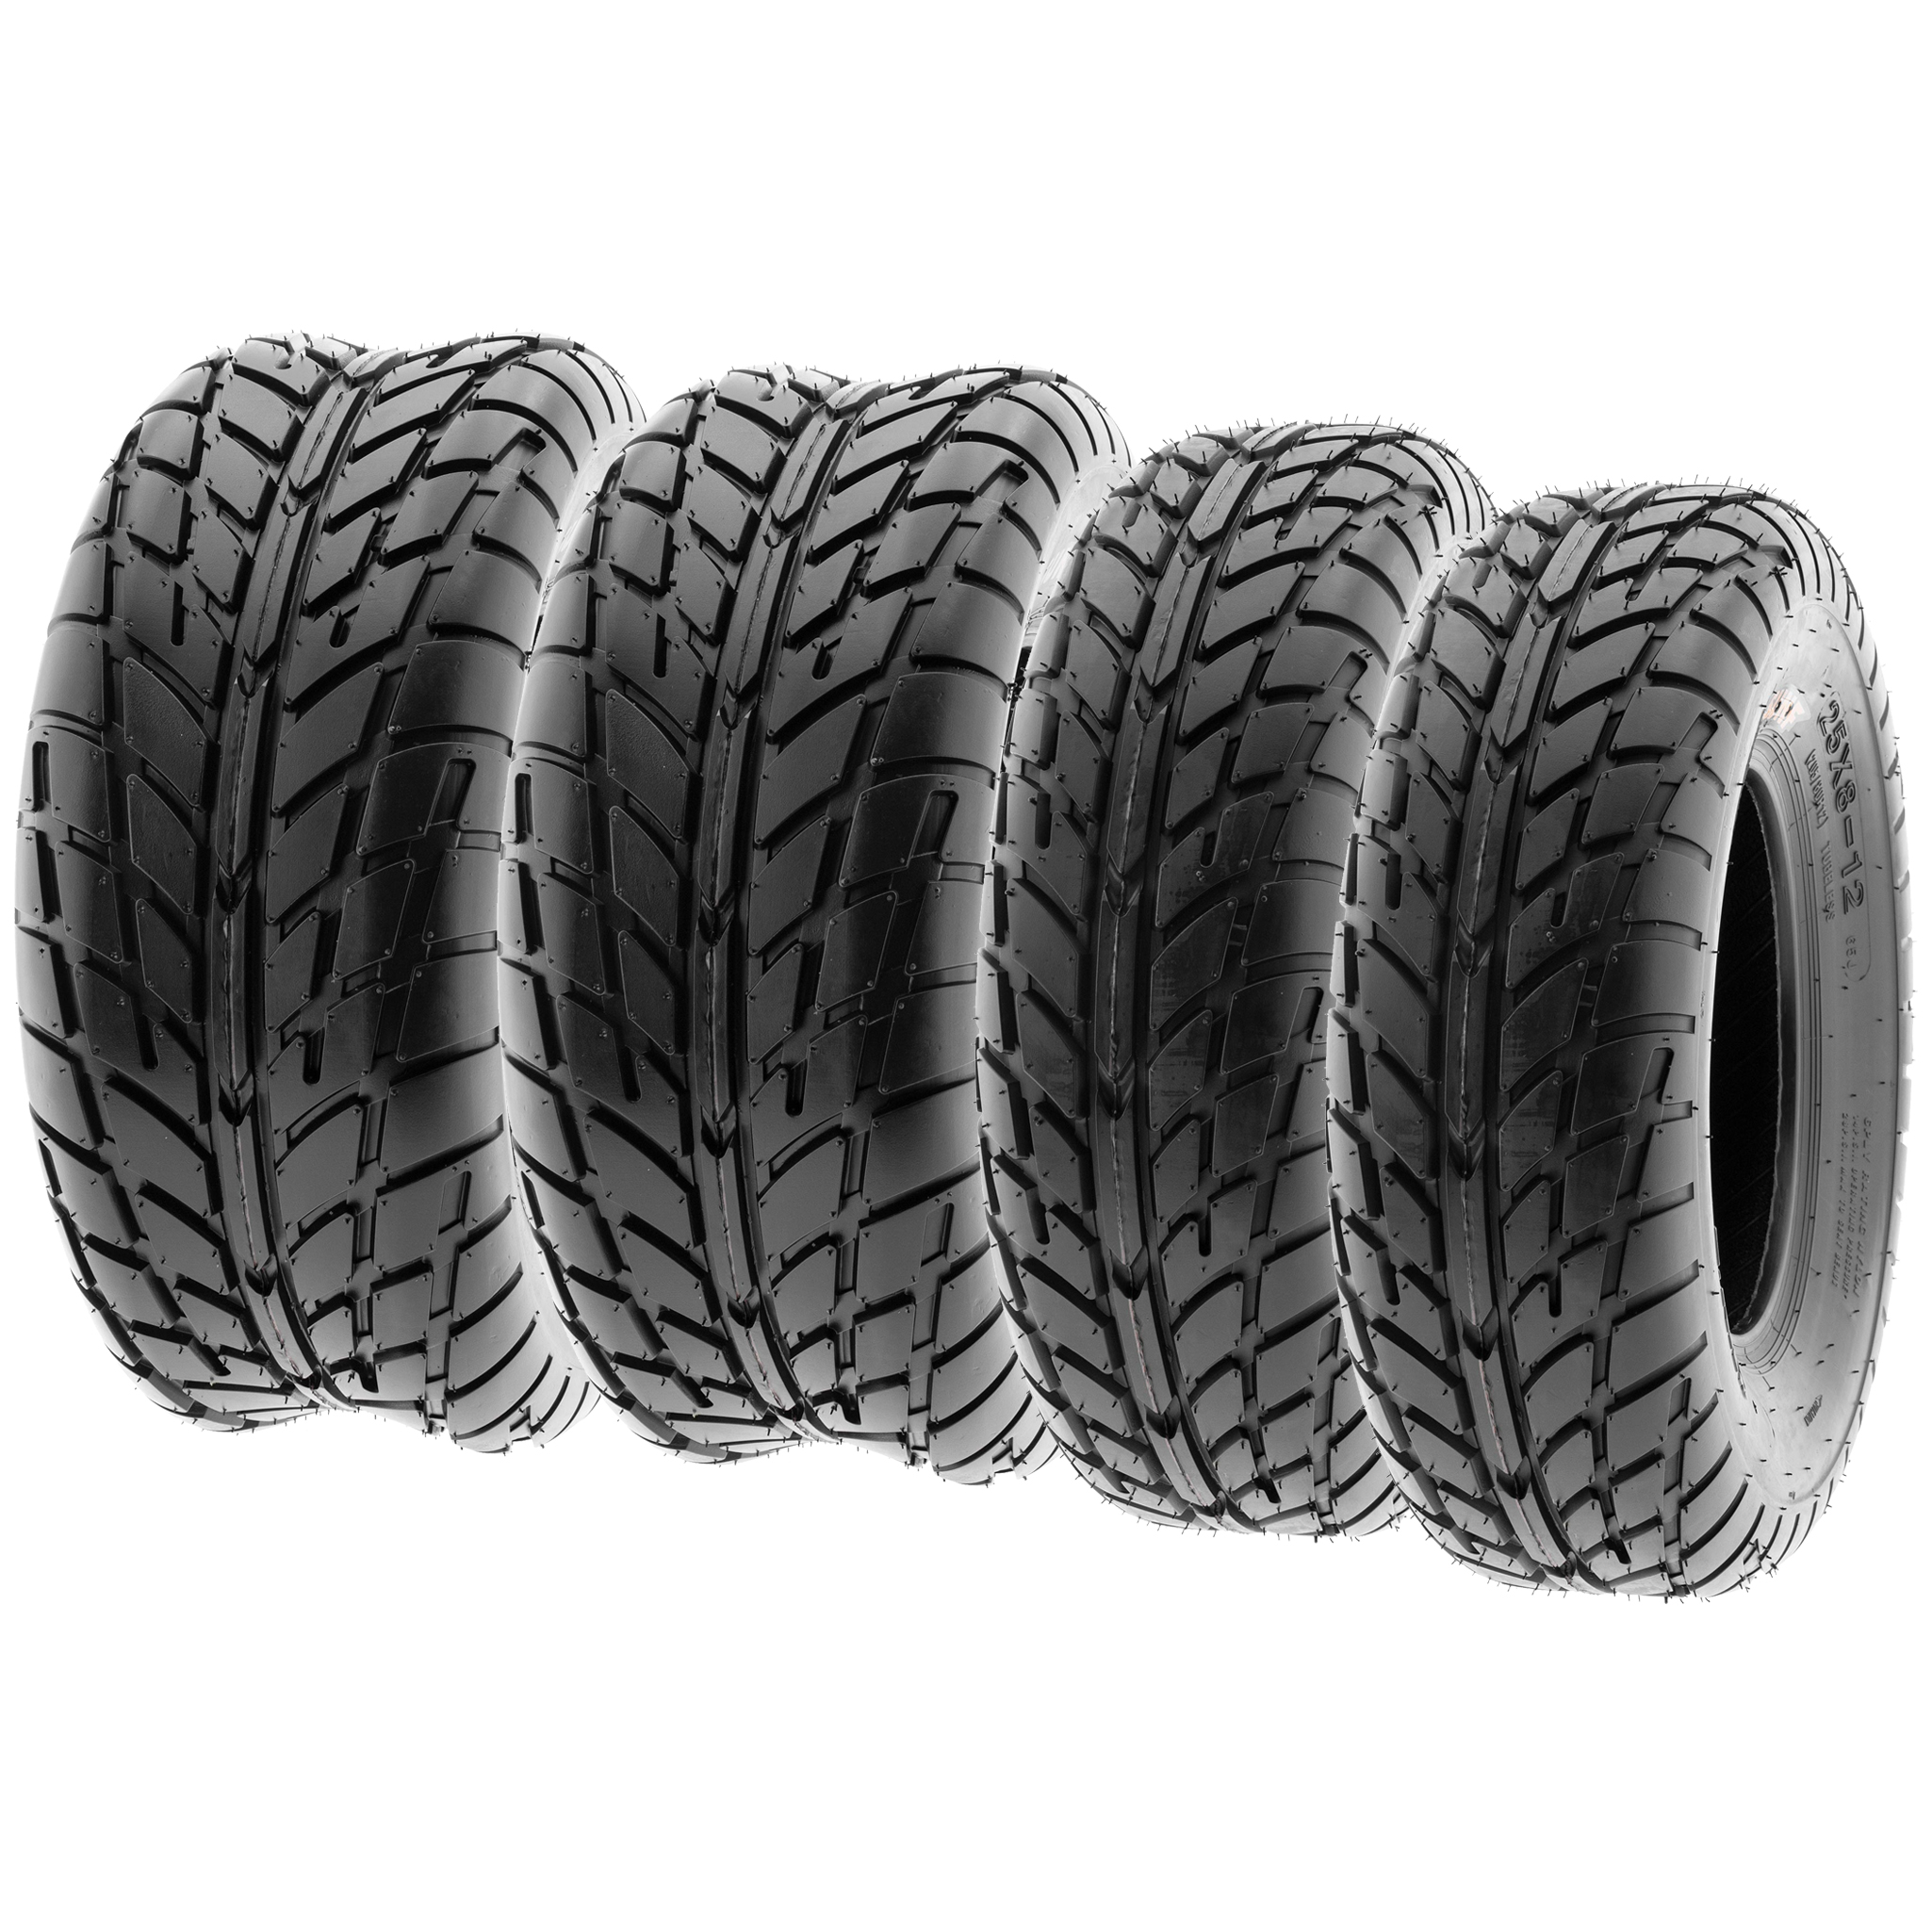 25x8-12 /& 25x10-12 ATV UTV All Terrain AT 6 Ply Tires A033 by SunF Set of 4